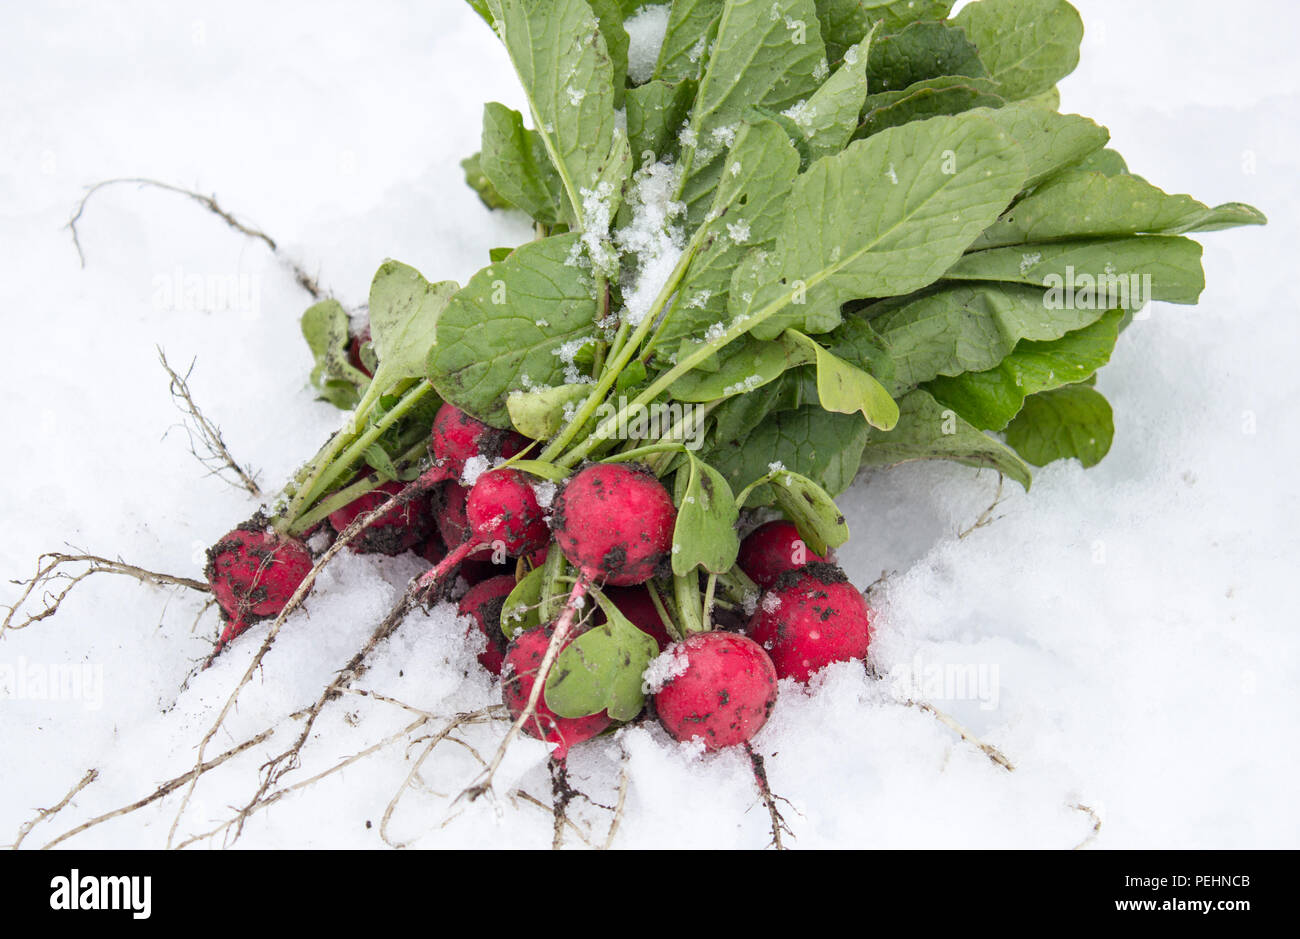 Radish in the snow. Spring frosts. vegetables - Stock Image